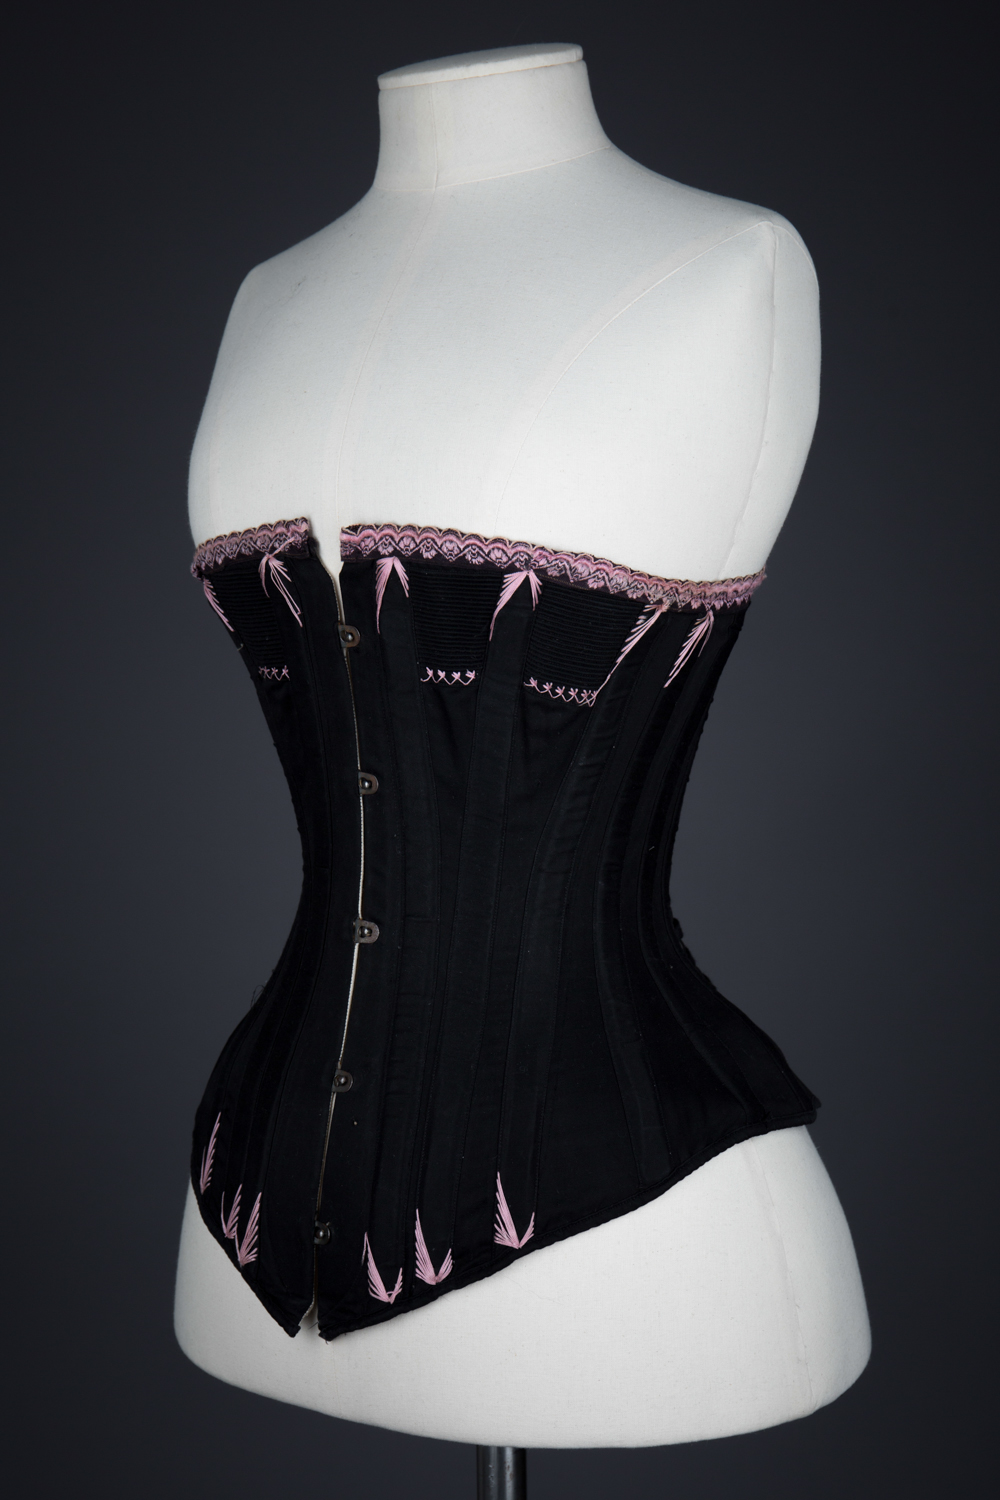 Black Cotton Corset With Spoon Busk, Pink Flossing Embroidery & Woven Trim, c. 1890-1900s, Great Britain. The Underpinnings Museum. Photography by Tigz Rice.